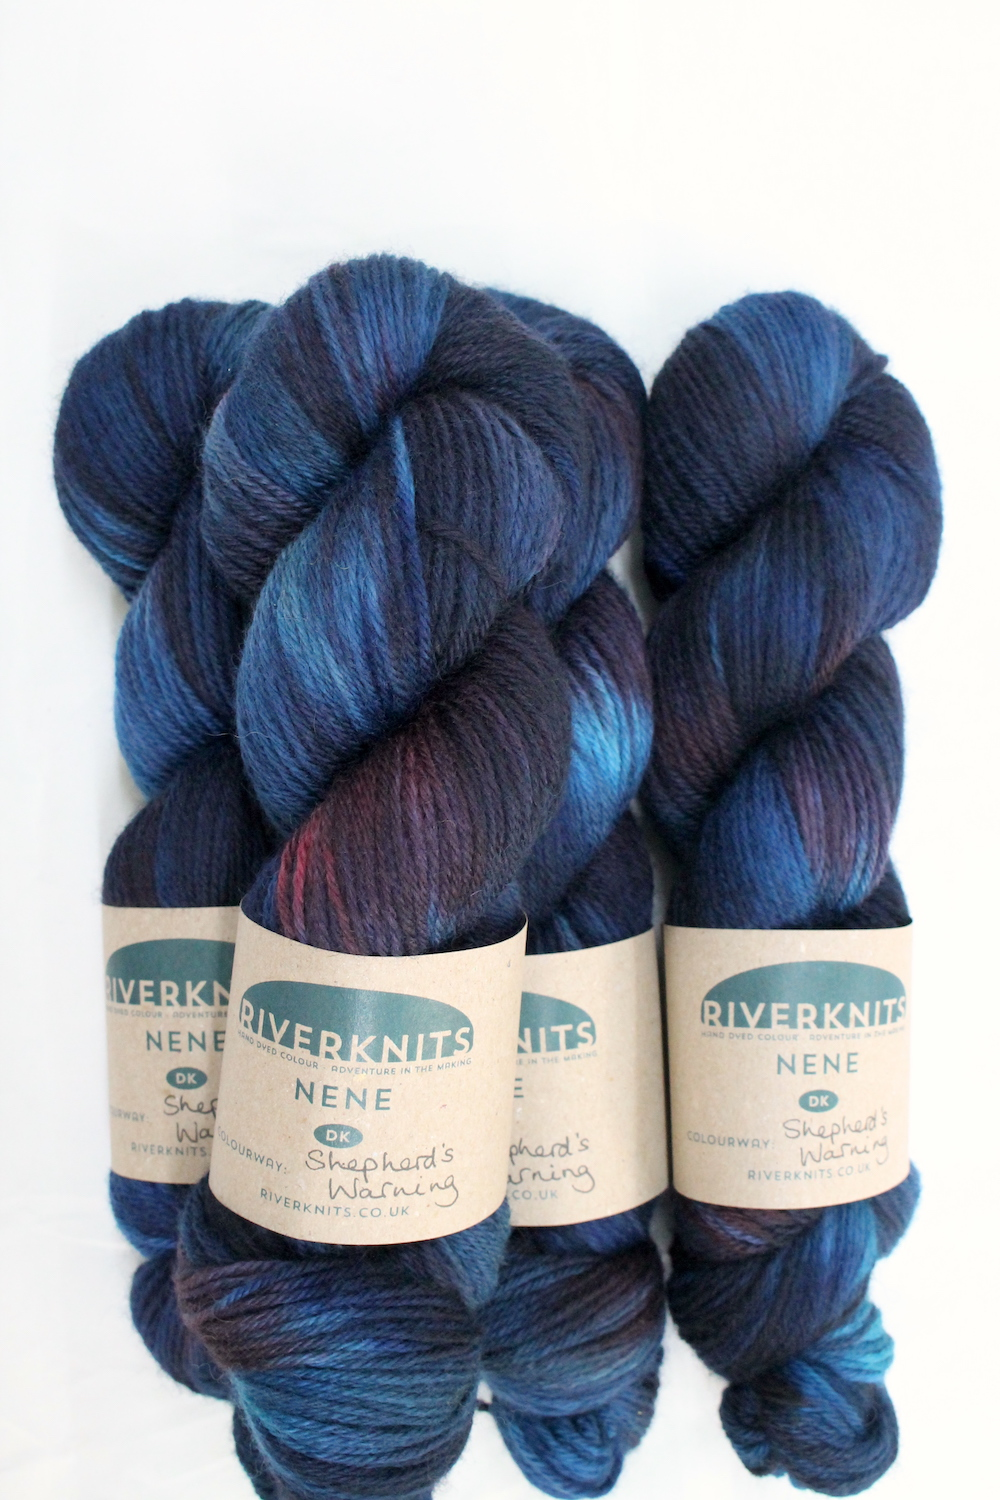 A pile of skeins of Nene DK in variegated deep blues, teals, and burgundy red